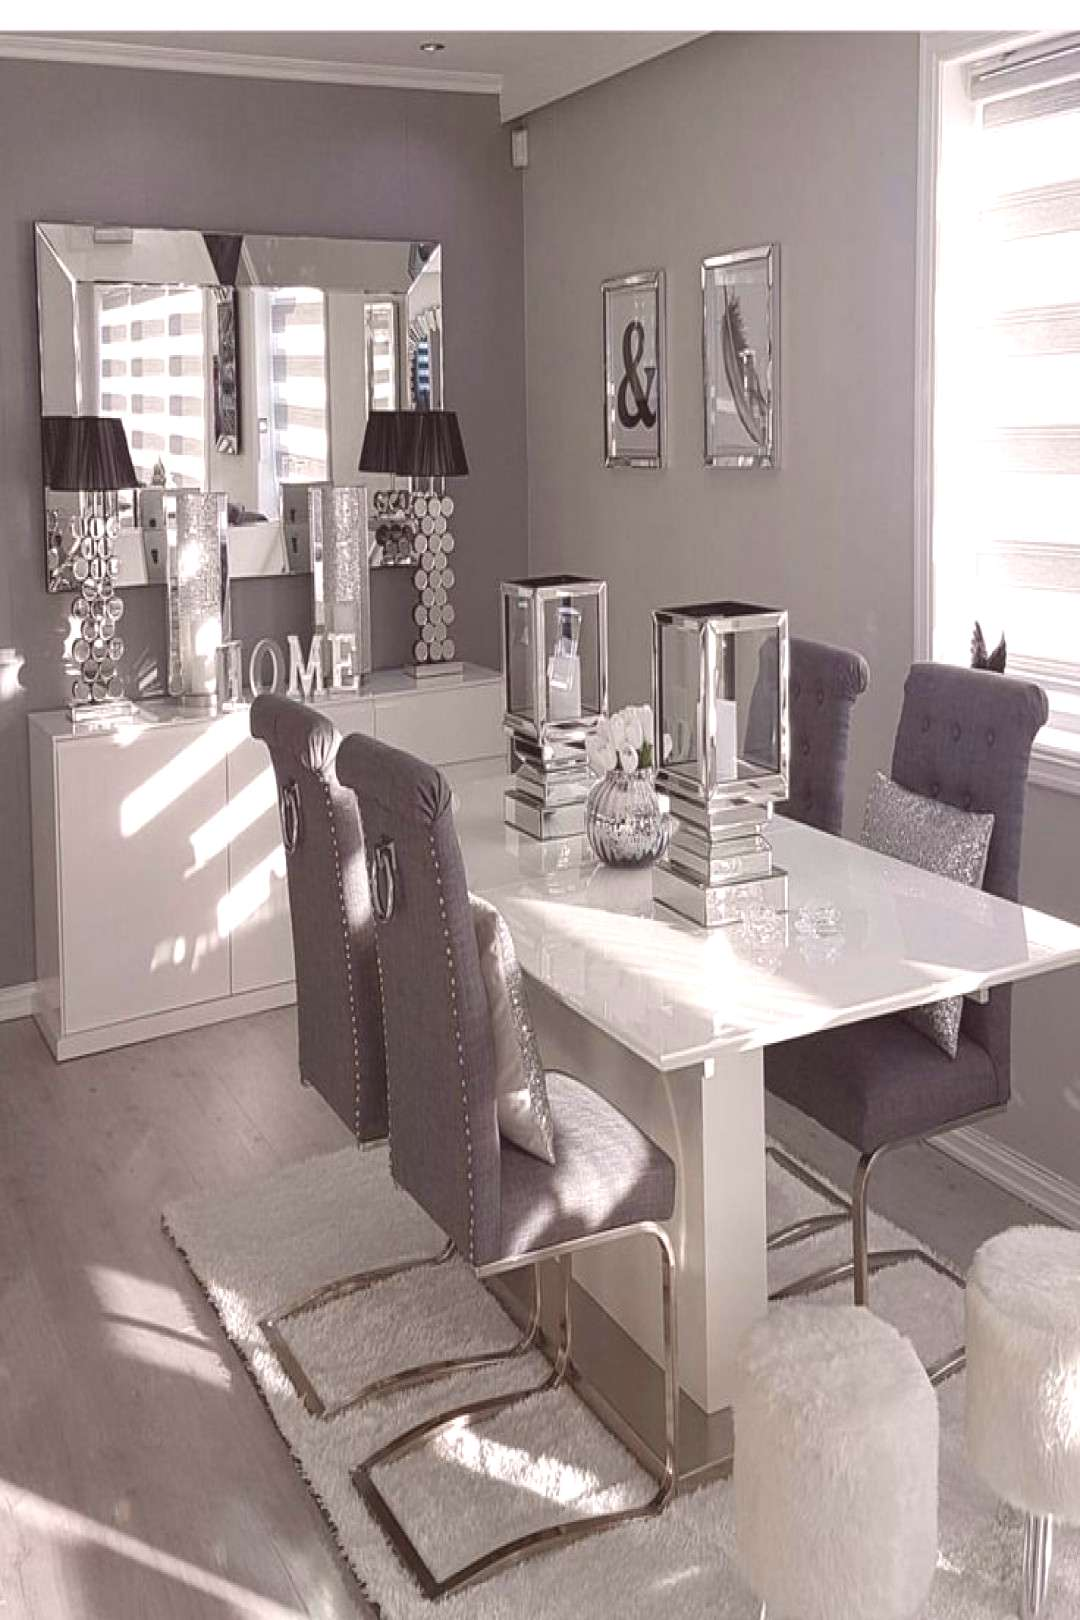 19 ideas for the dining room gtgt More decorating ideas for restaurants ...#decor